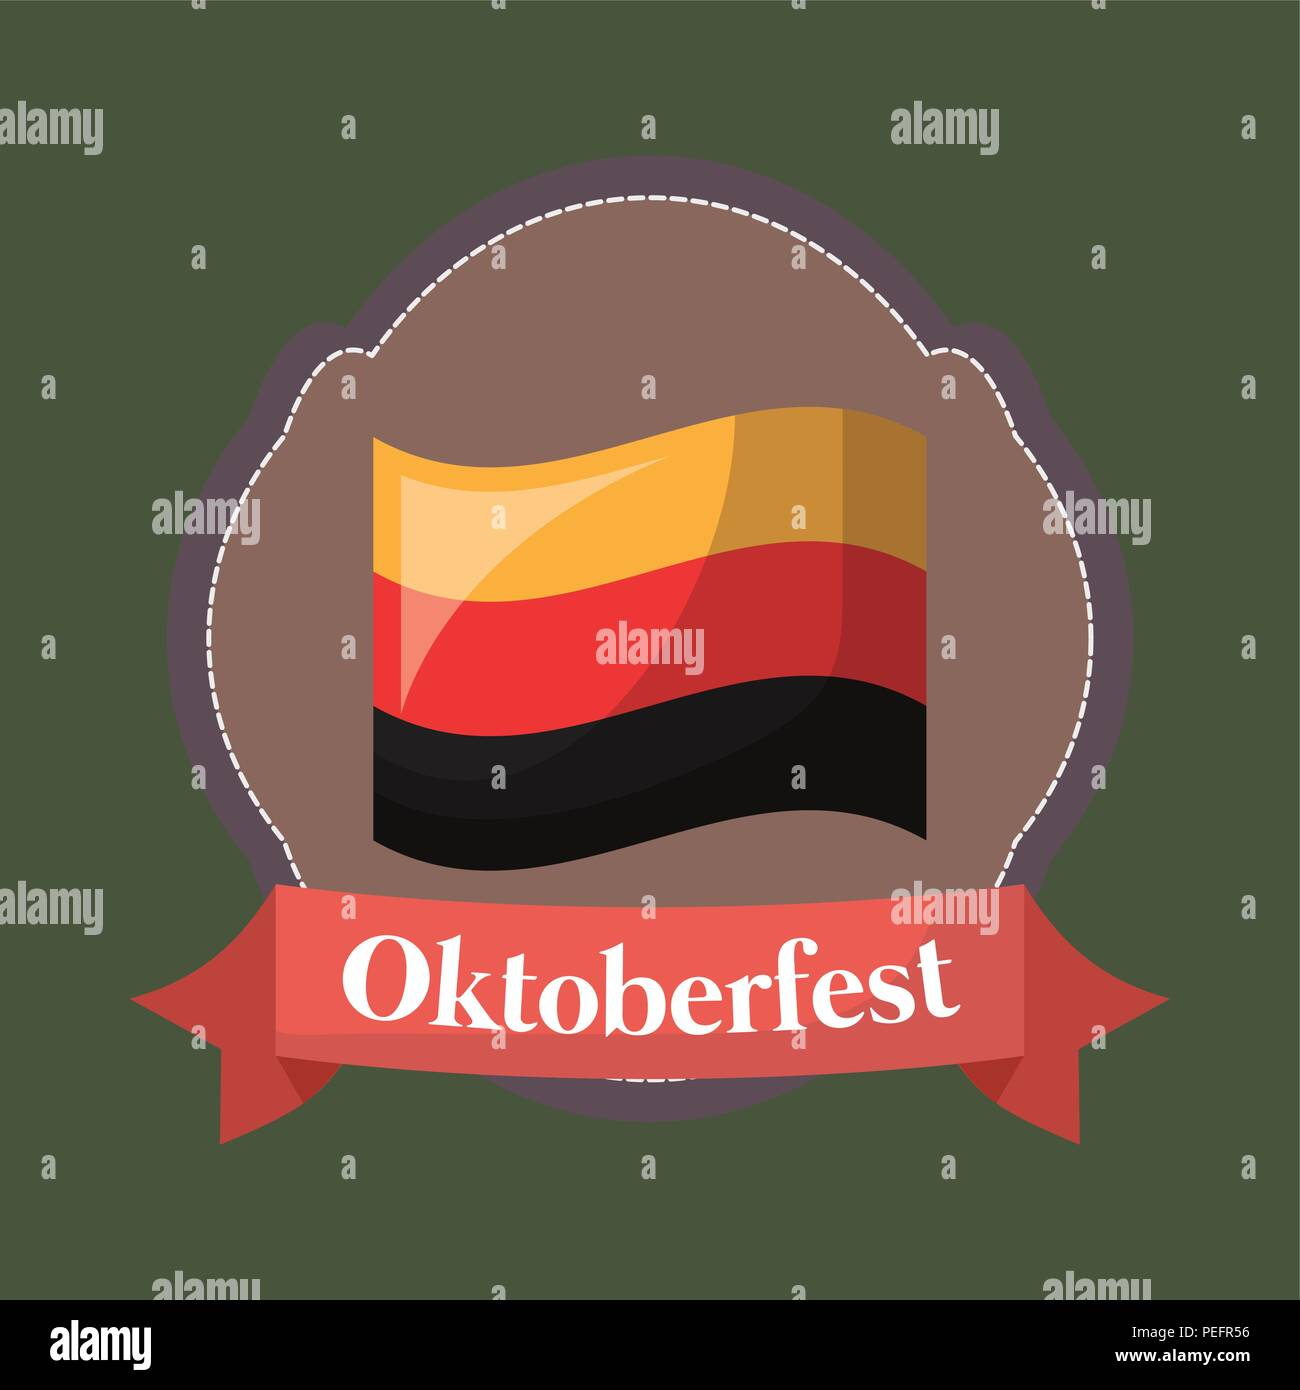 Oktoberfest festival emblem with germany flag icon over green background, colorful design. vector illustration - Stock Image